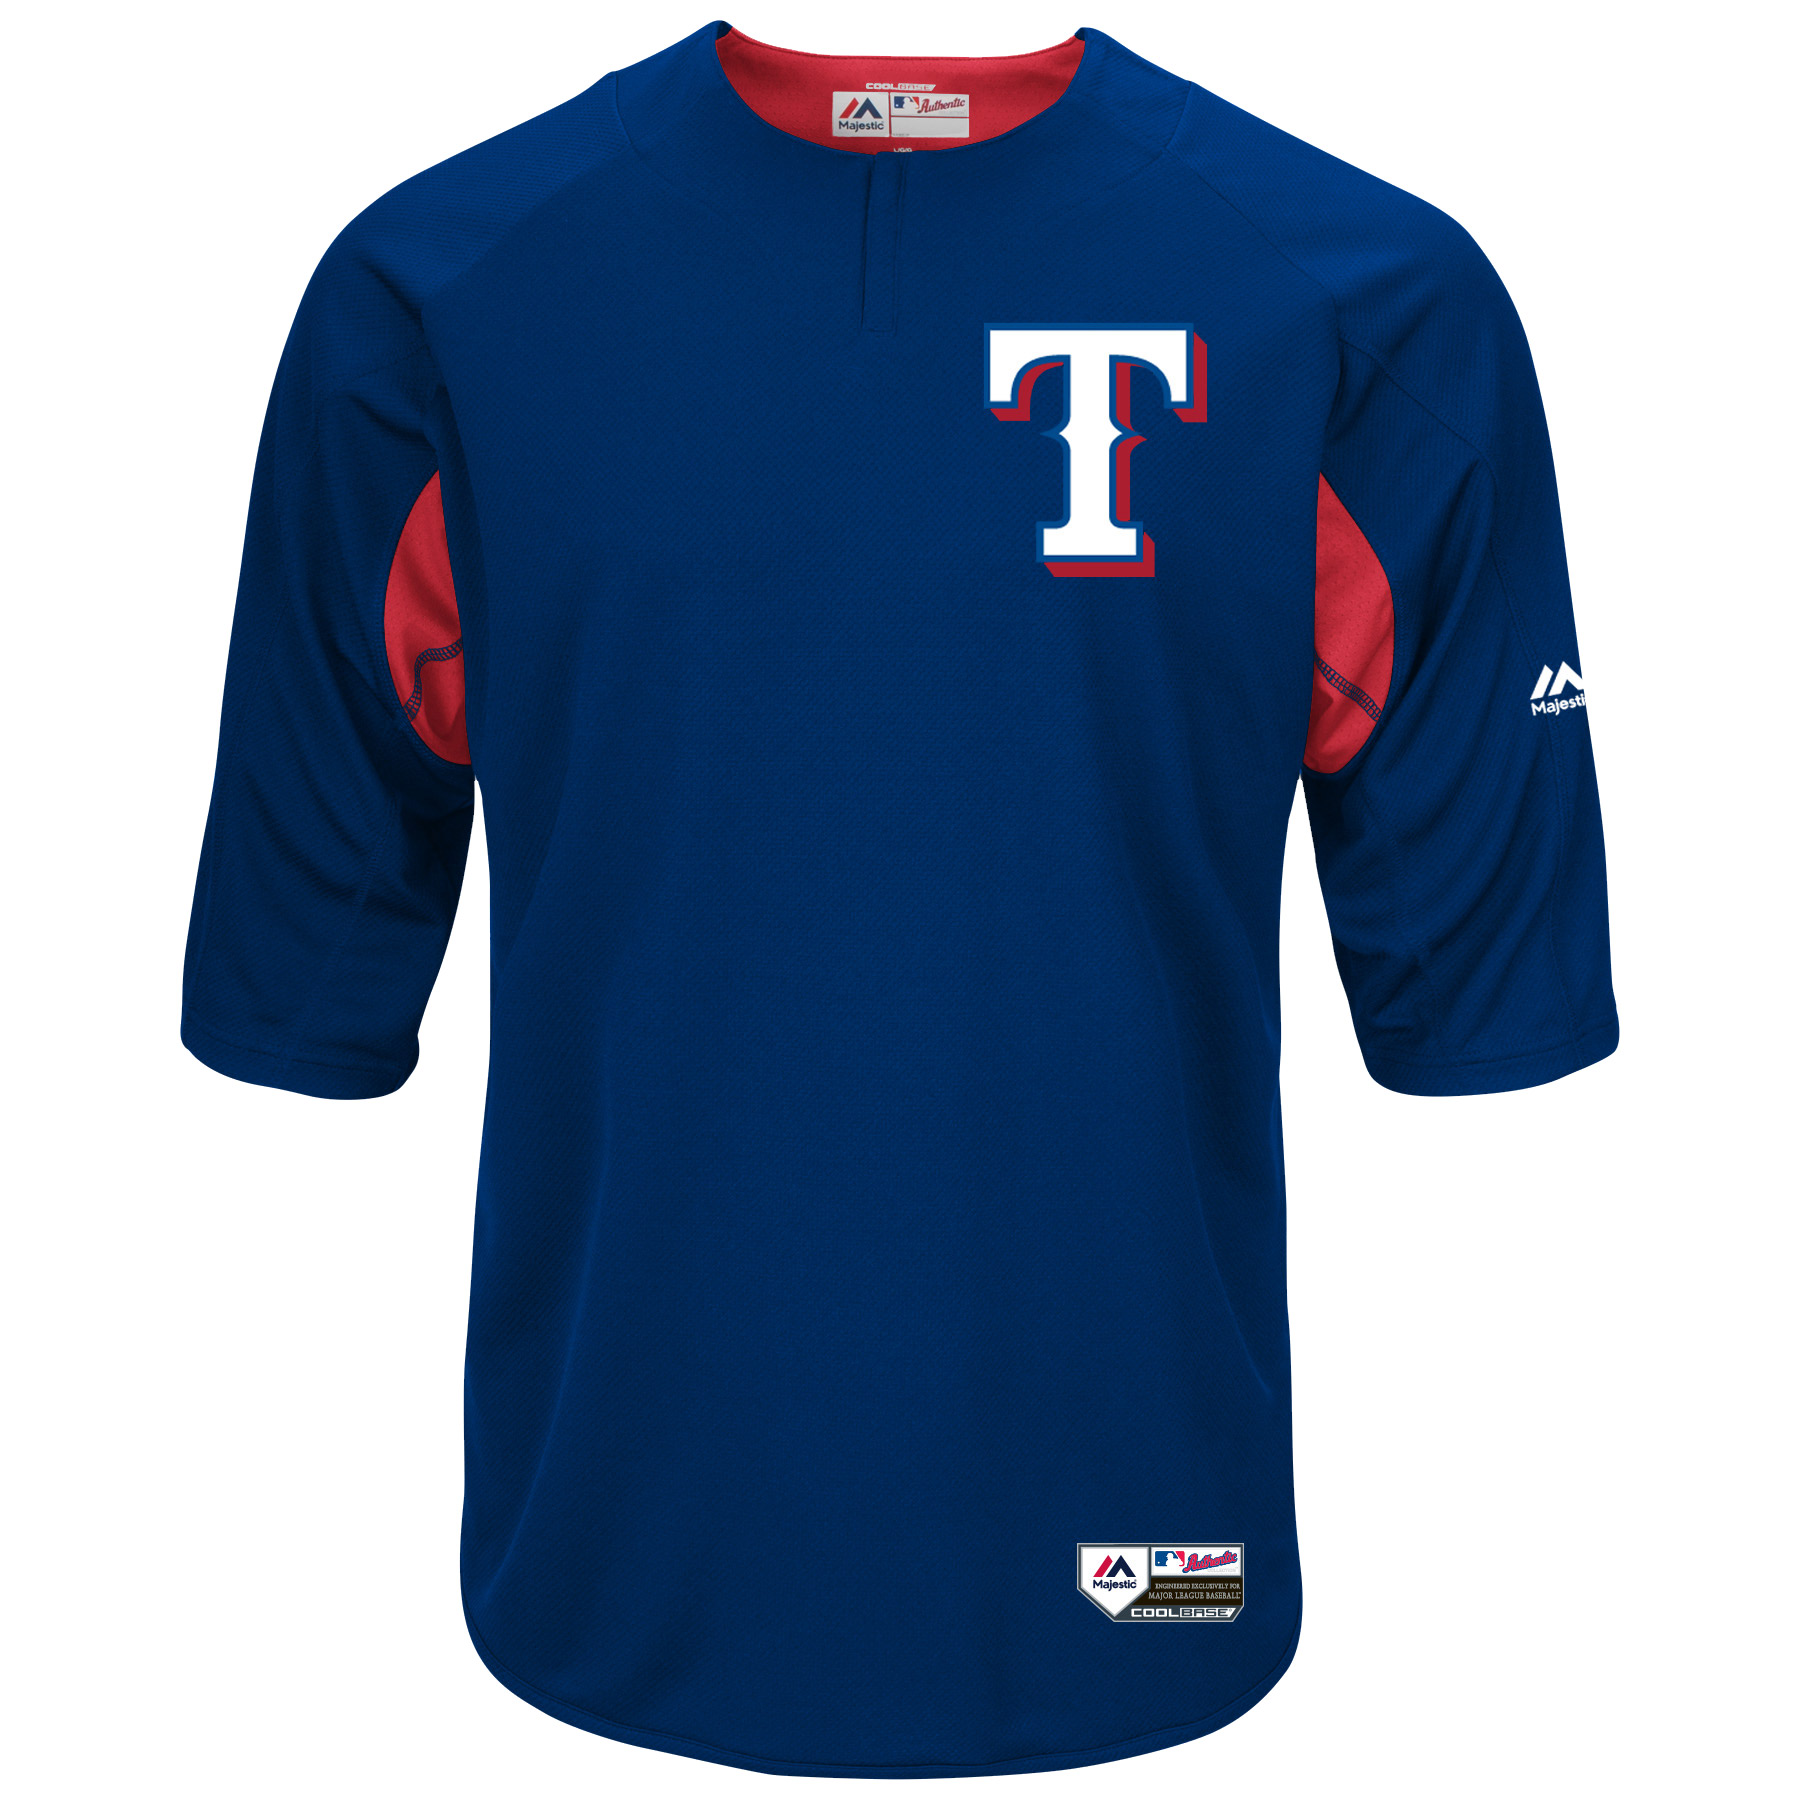 online retailer 96809 e95ce Texas Rangers Majestic Authentic Collection On-Field 3/4-Sleeve Batting  Practice Jersey - Royal/Red